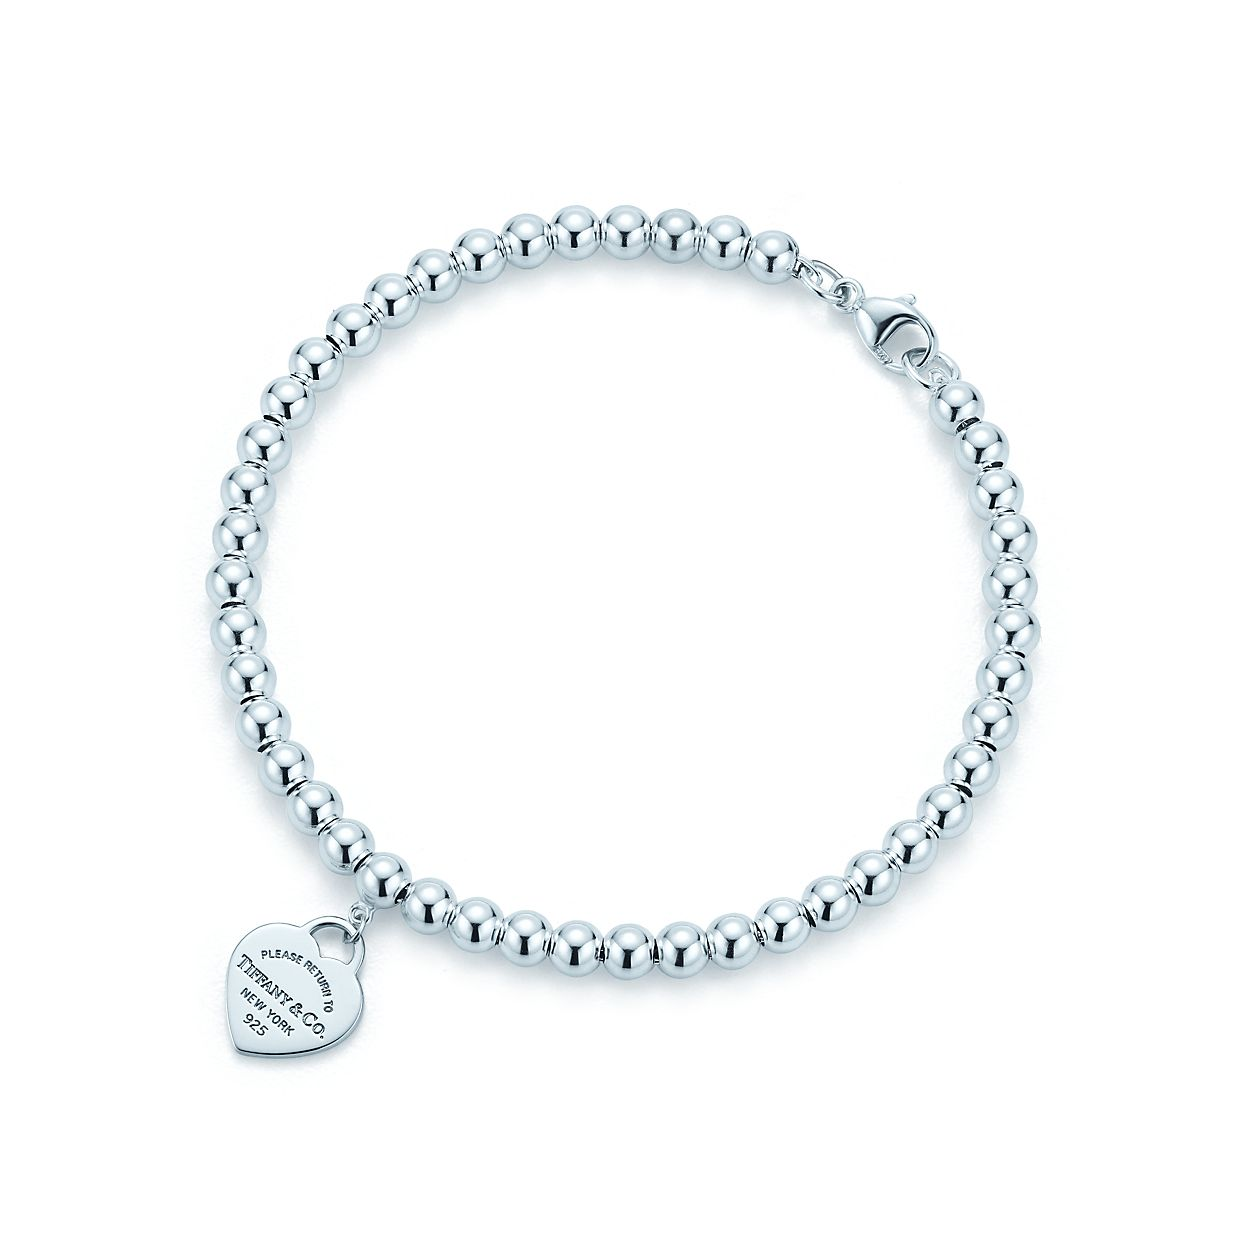 jewellery edges silver cut a giving sterling heavy the cutting rope solid diamond more masculine bracelet to